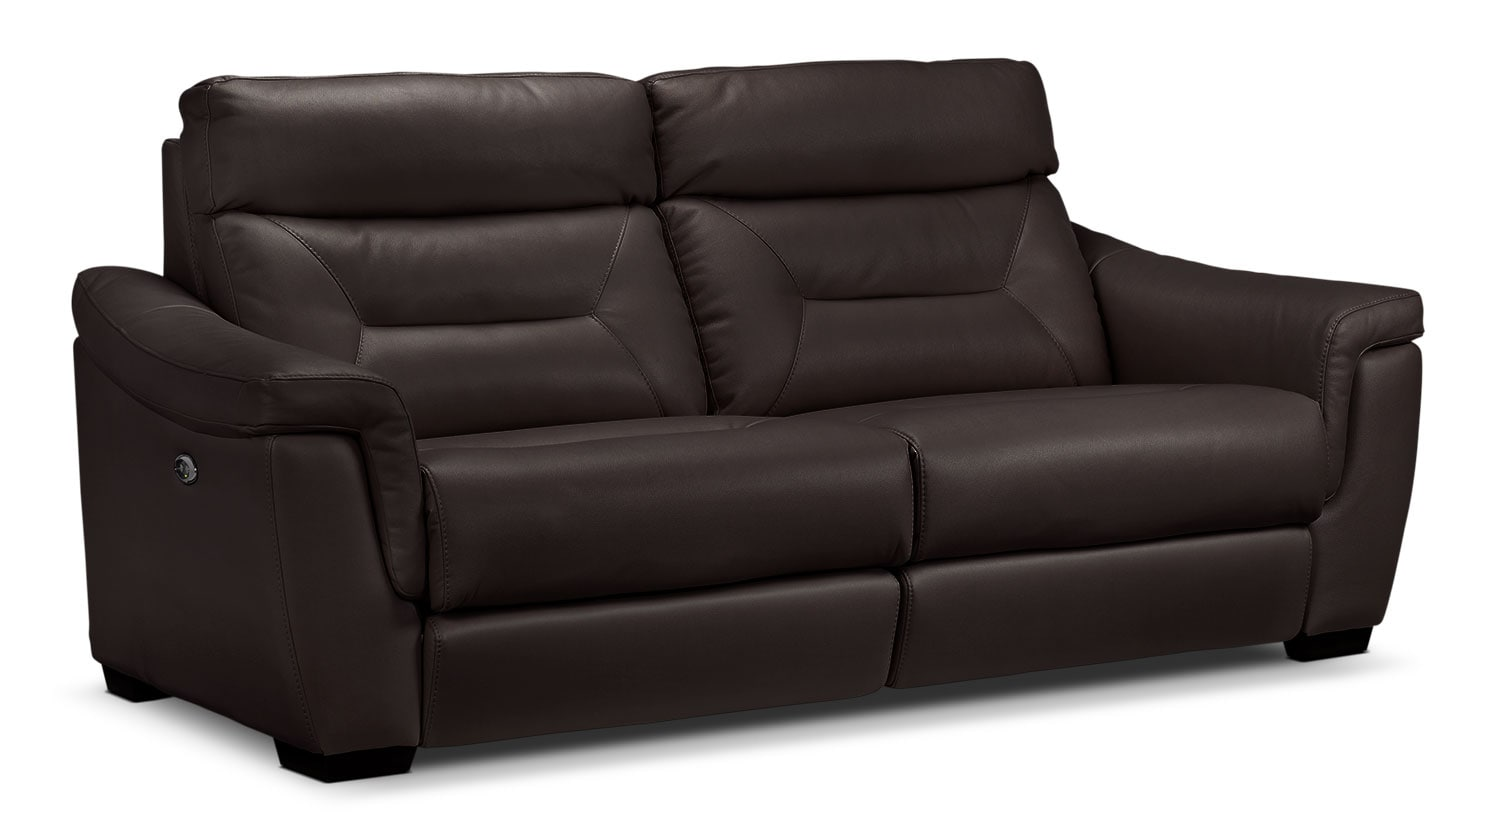 Ralston Power Reclining Sofa - Walnut